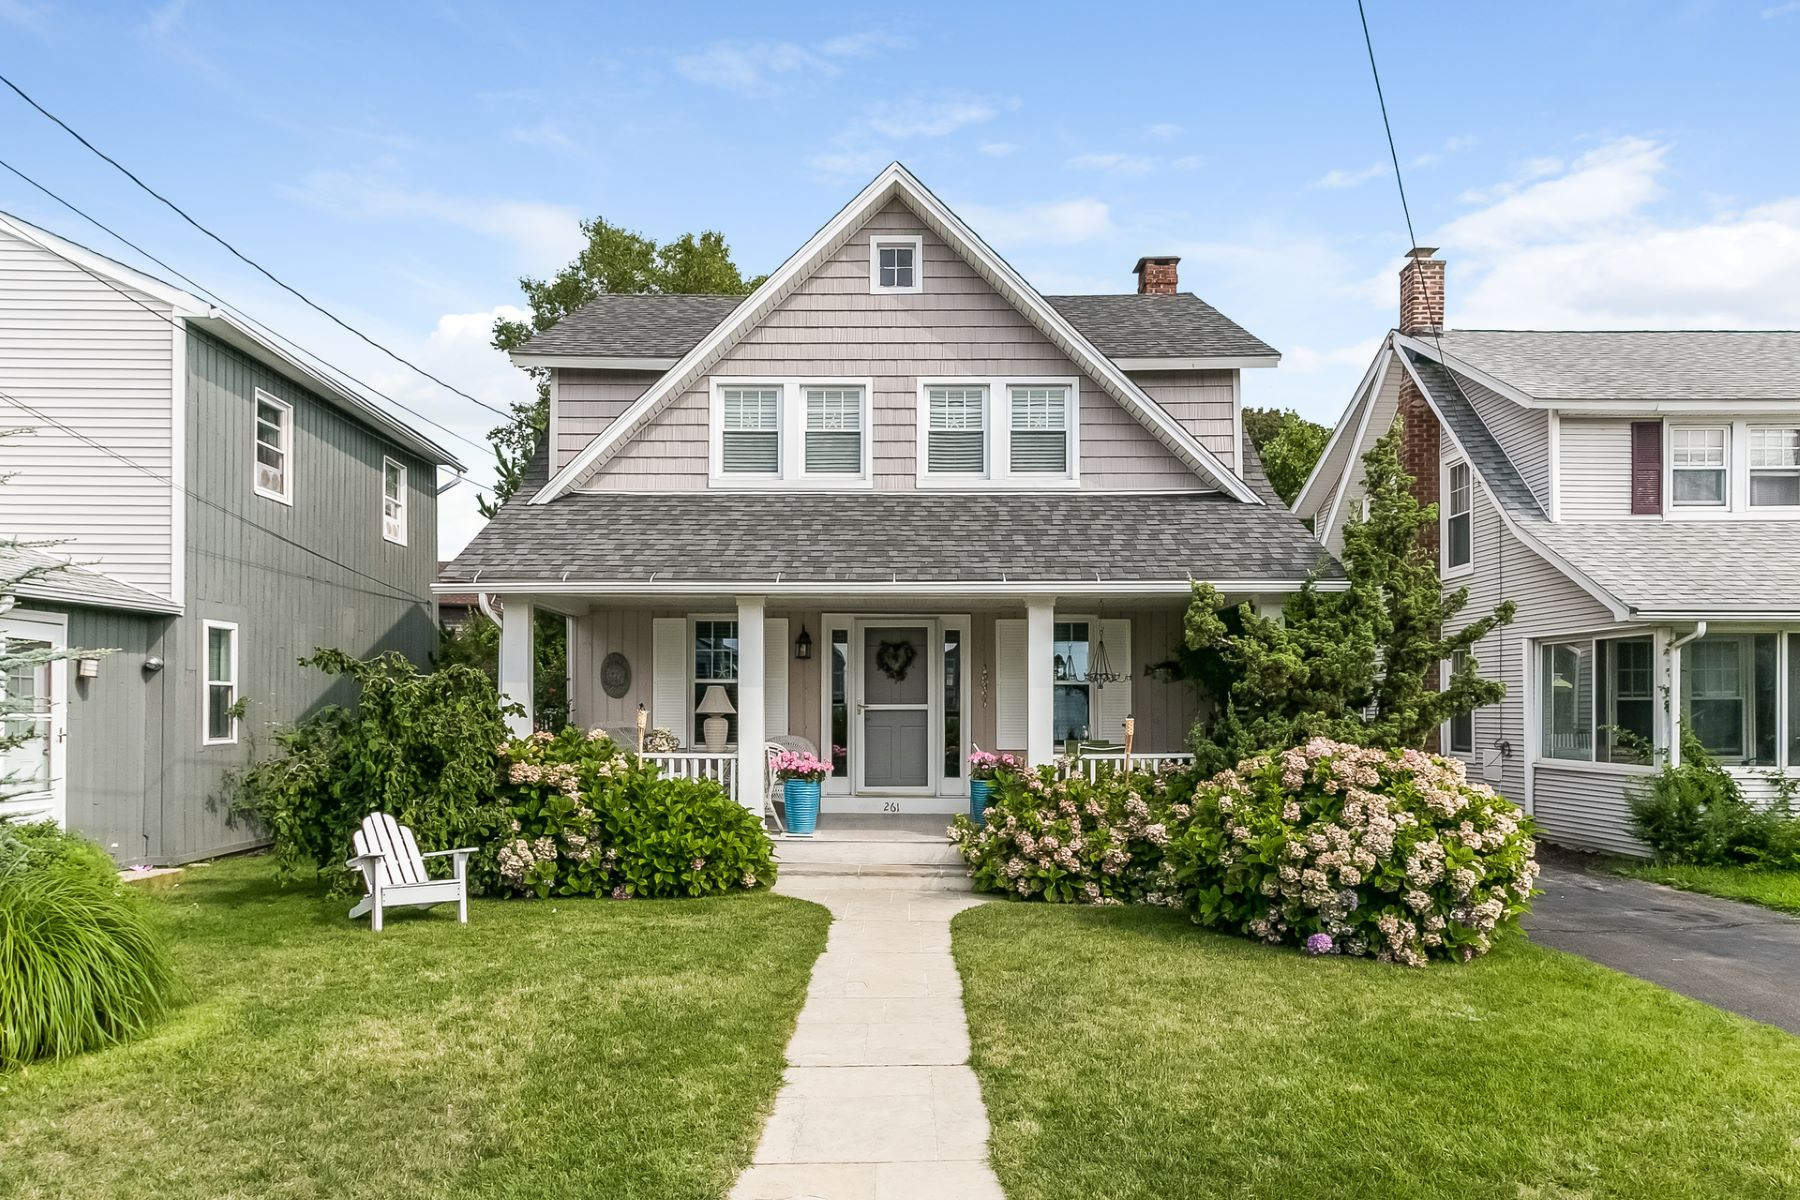 Casa Unifamiliar por un Venta en 261 Cosey Beach Avenue East Haven, Connecticut, 06512 Estados Unidos